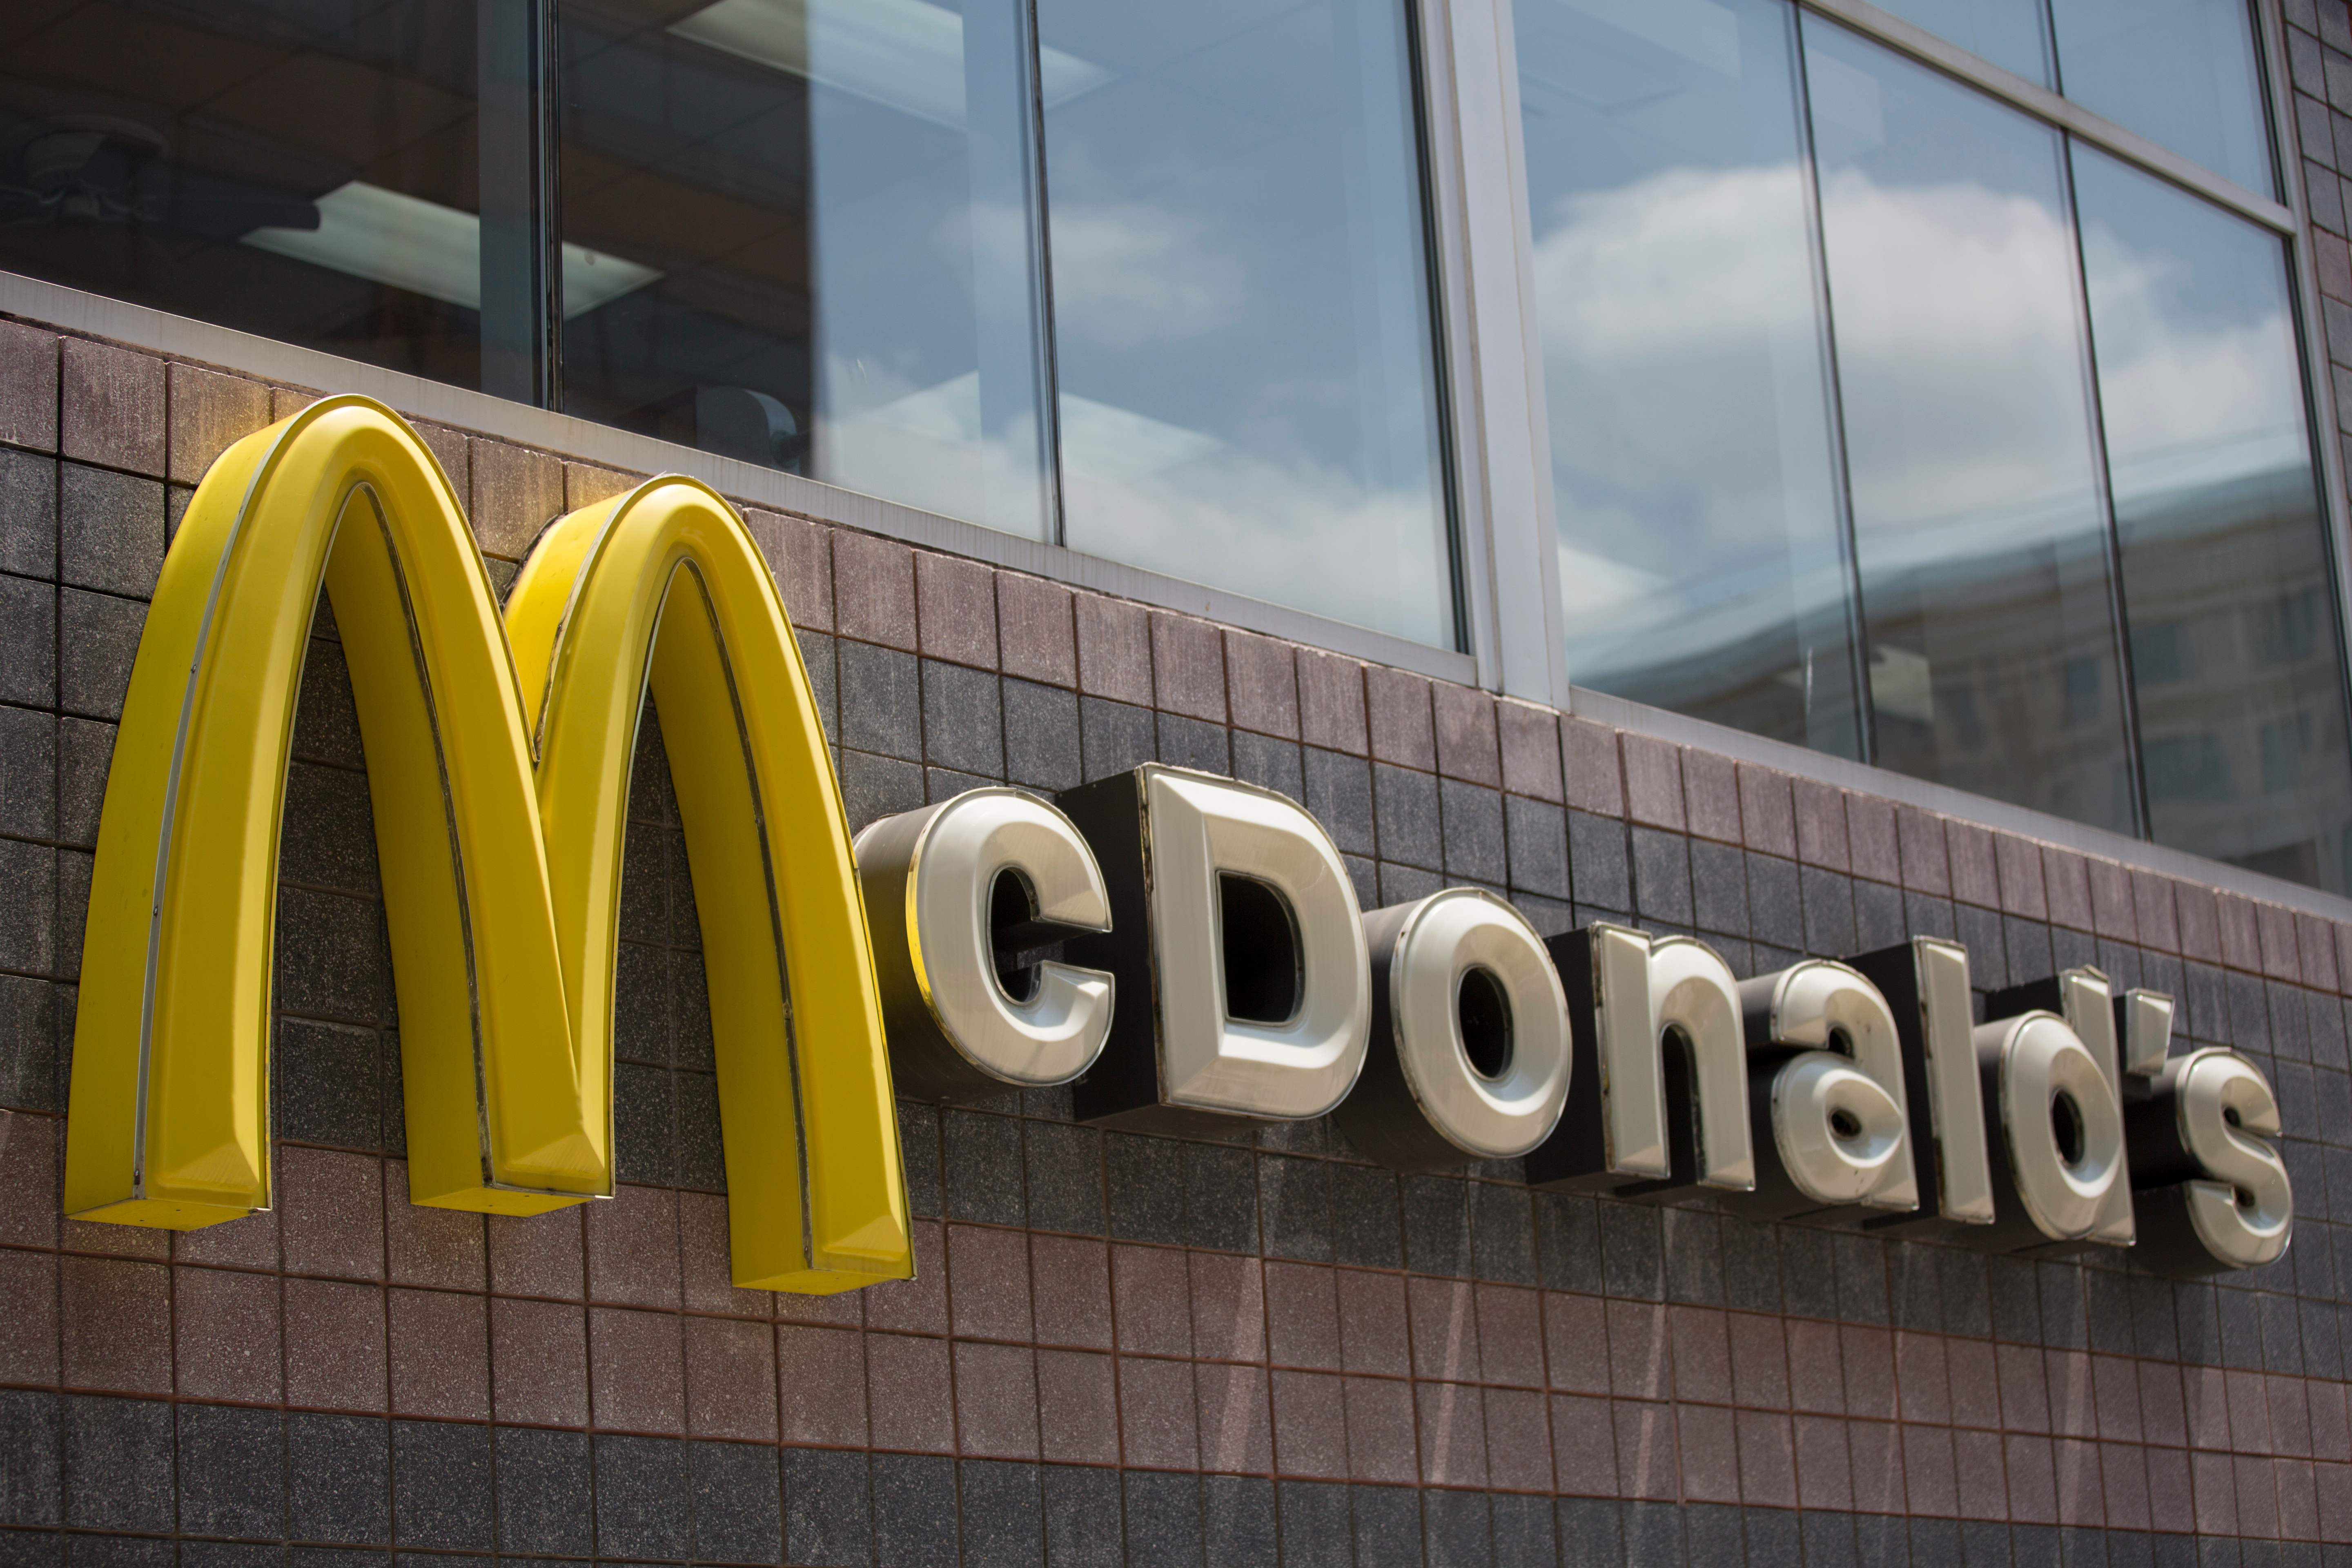 McDonald's fans need to check opening times before visiting